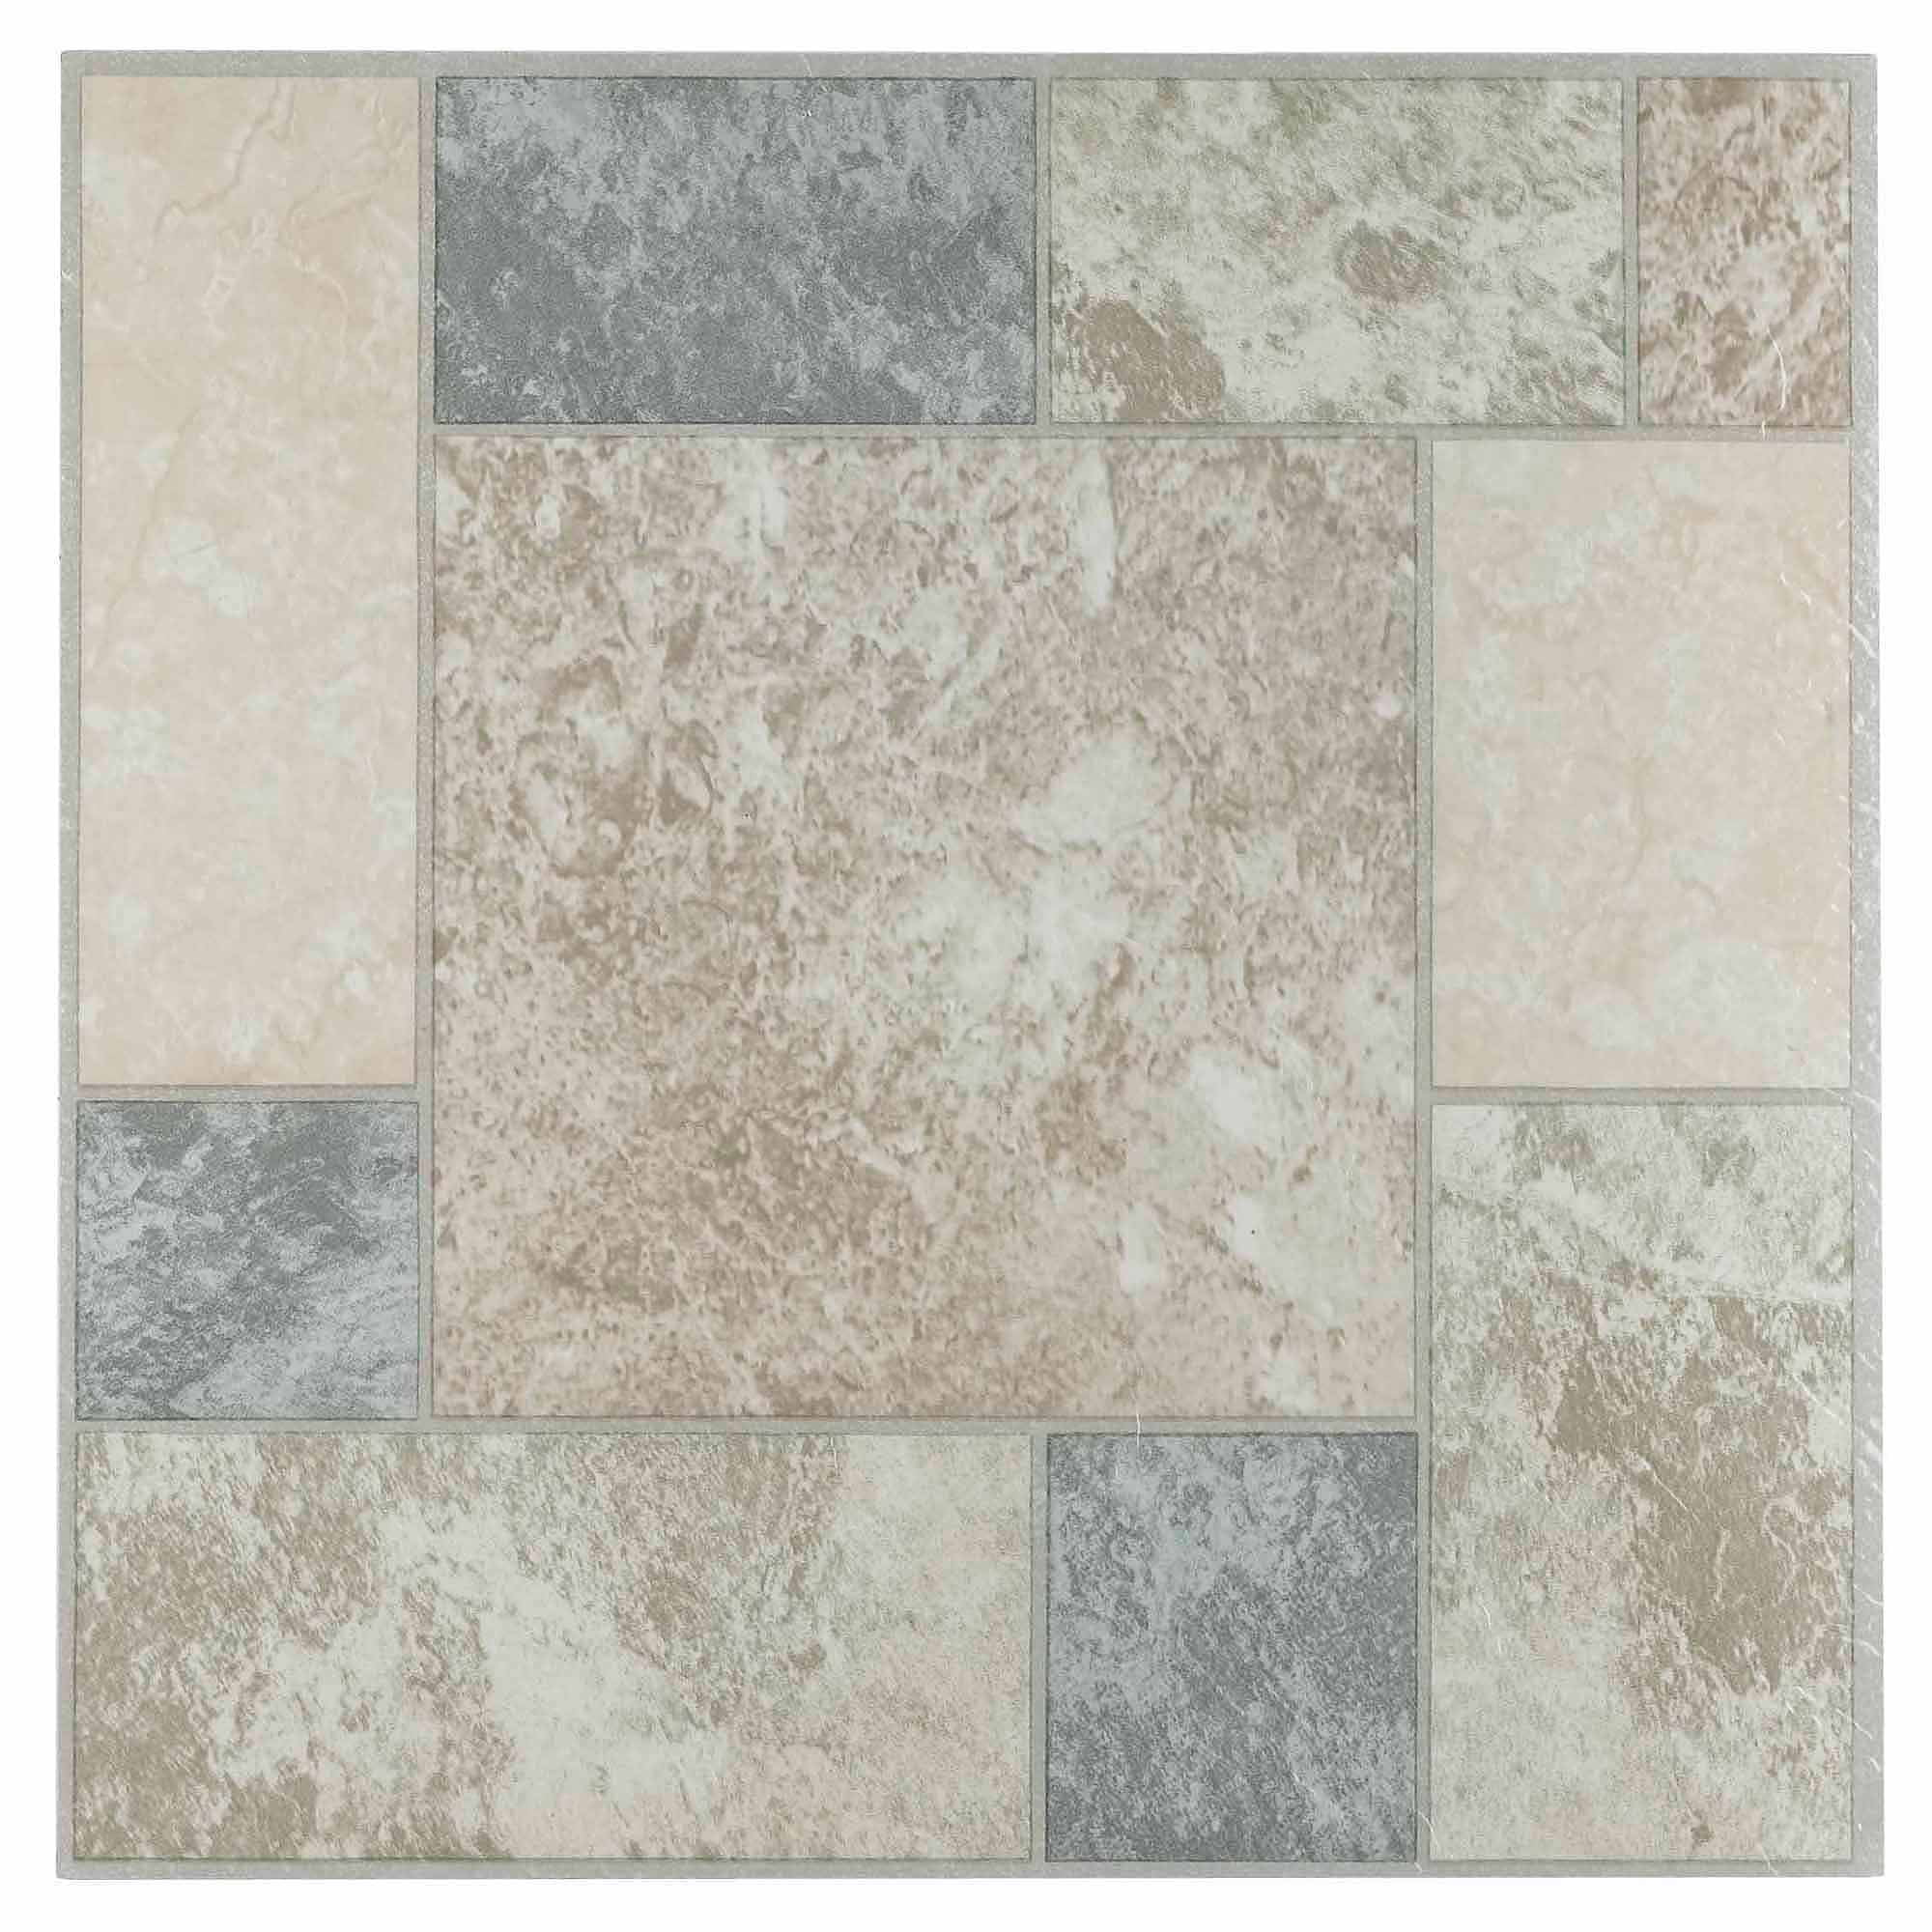 Nexus marble blocks 12x12self adhesive vinyl floor tile 20 tiles nexus marble blocks 12x12self adhesive vinyl floor tile 20 tiles20 sqft walmart dailygadgetfo Choice Image